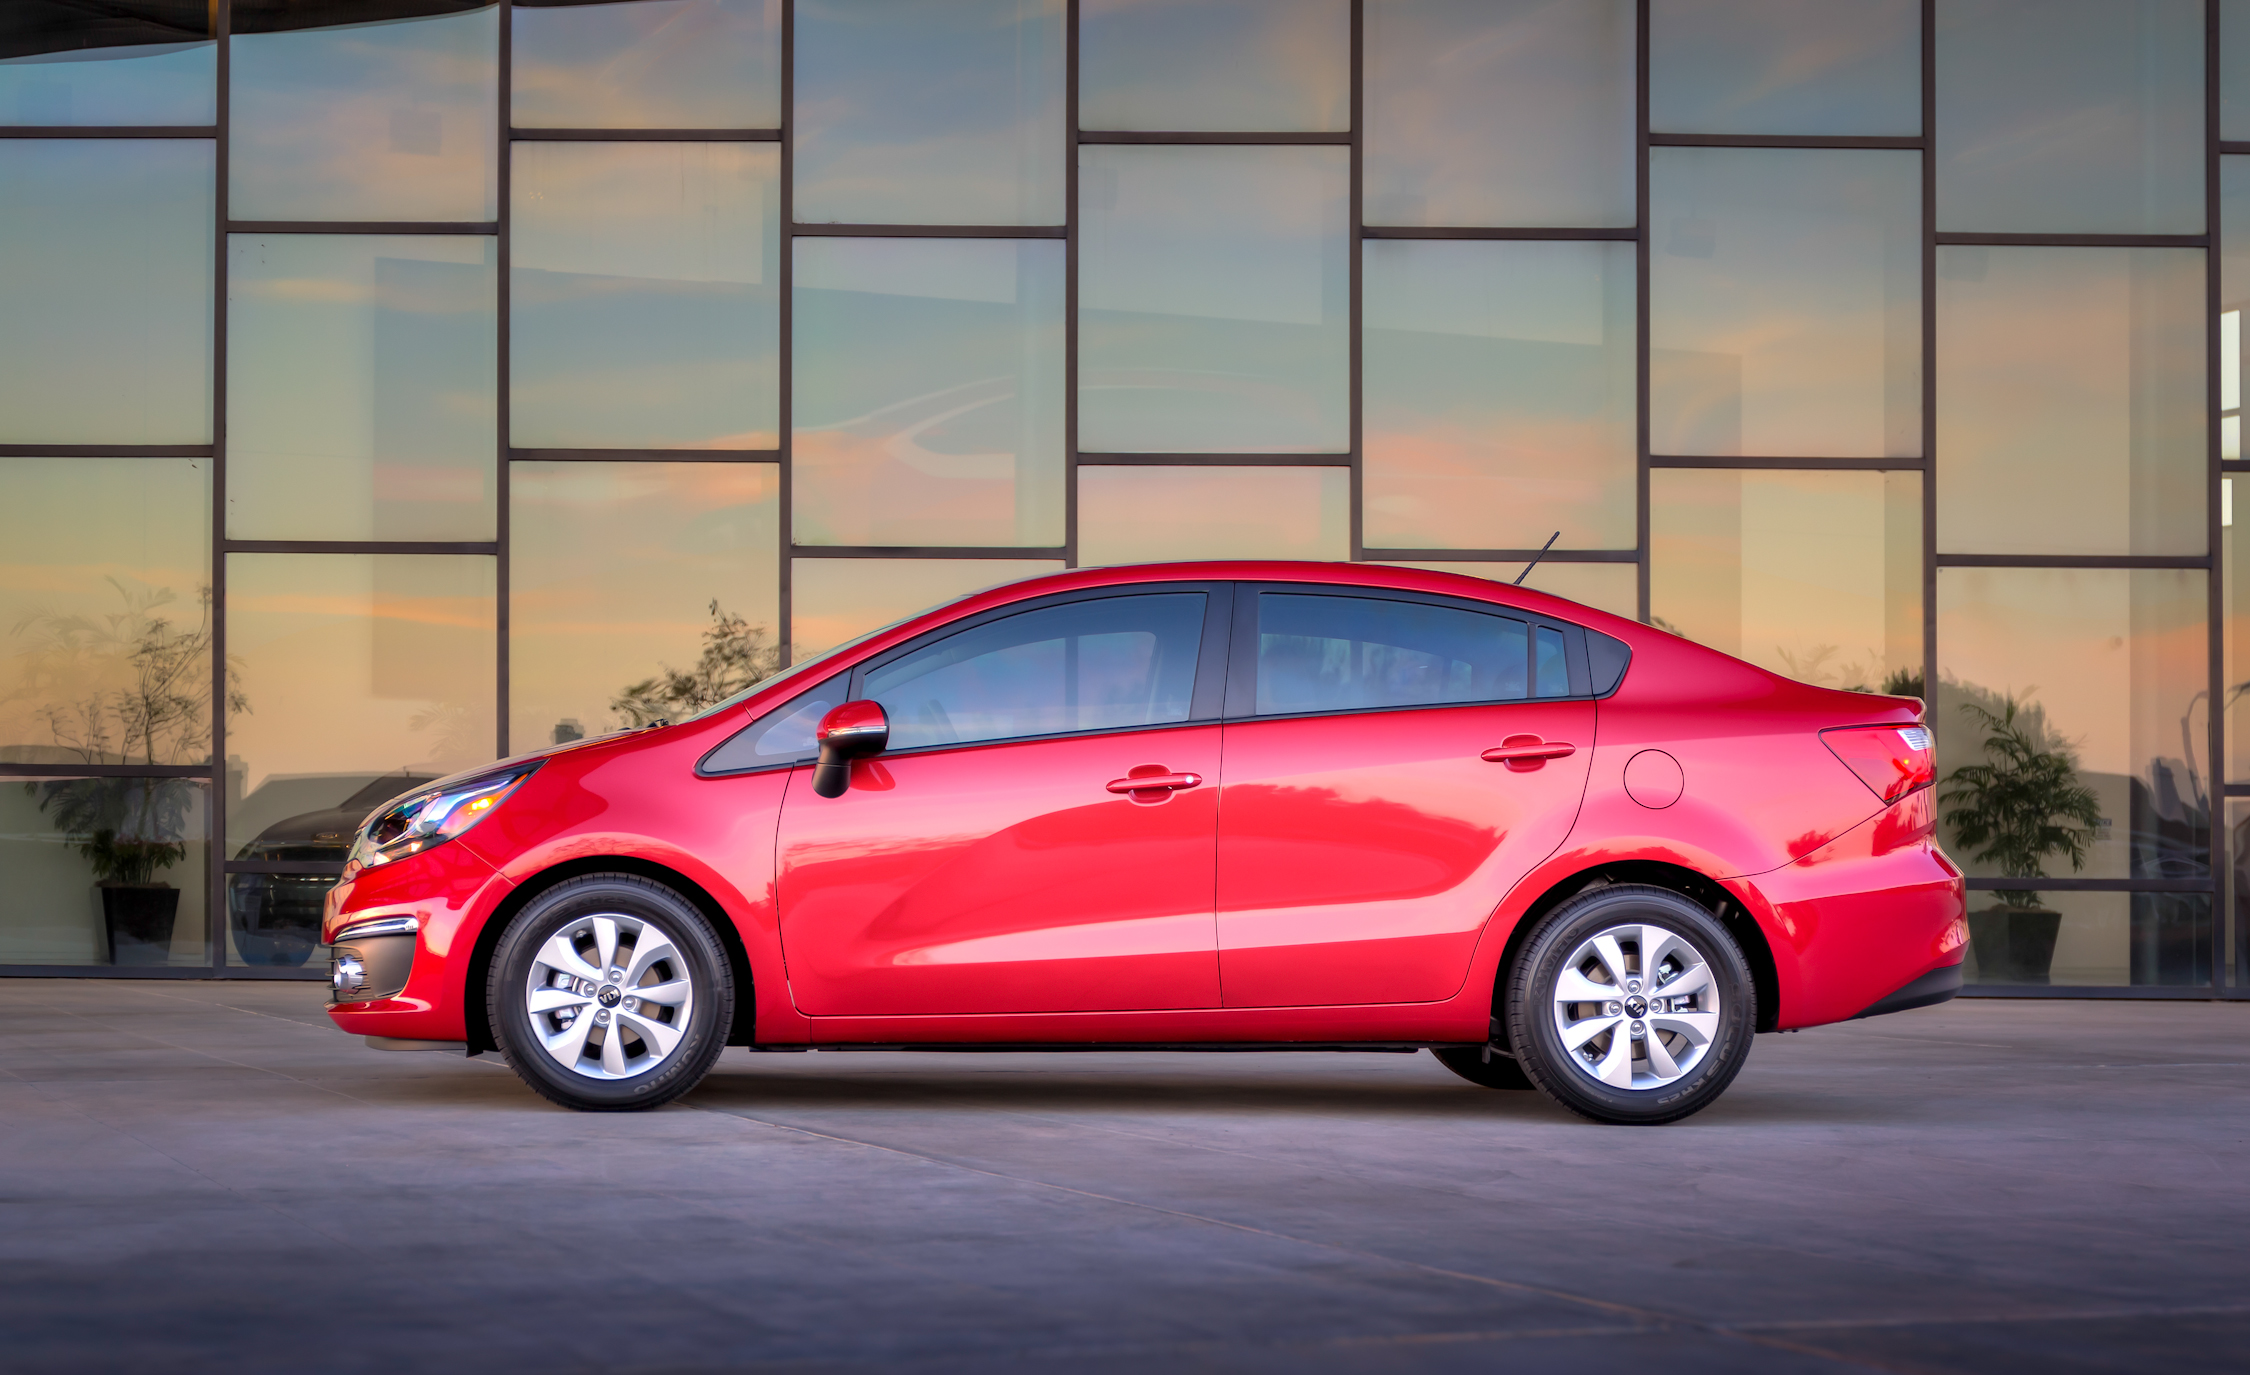 2016 Kia Rio Sedan (View 15 of 19)